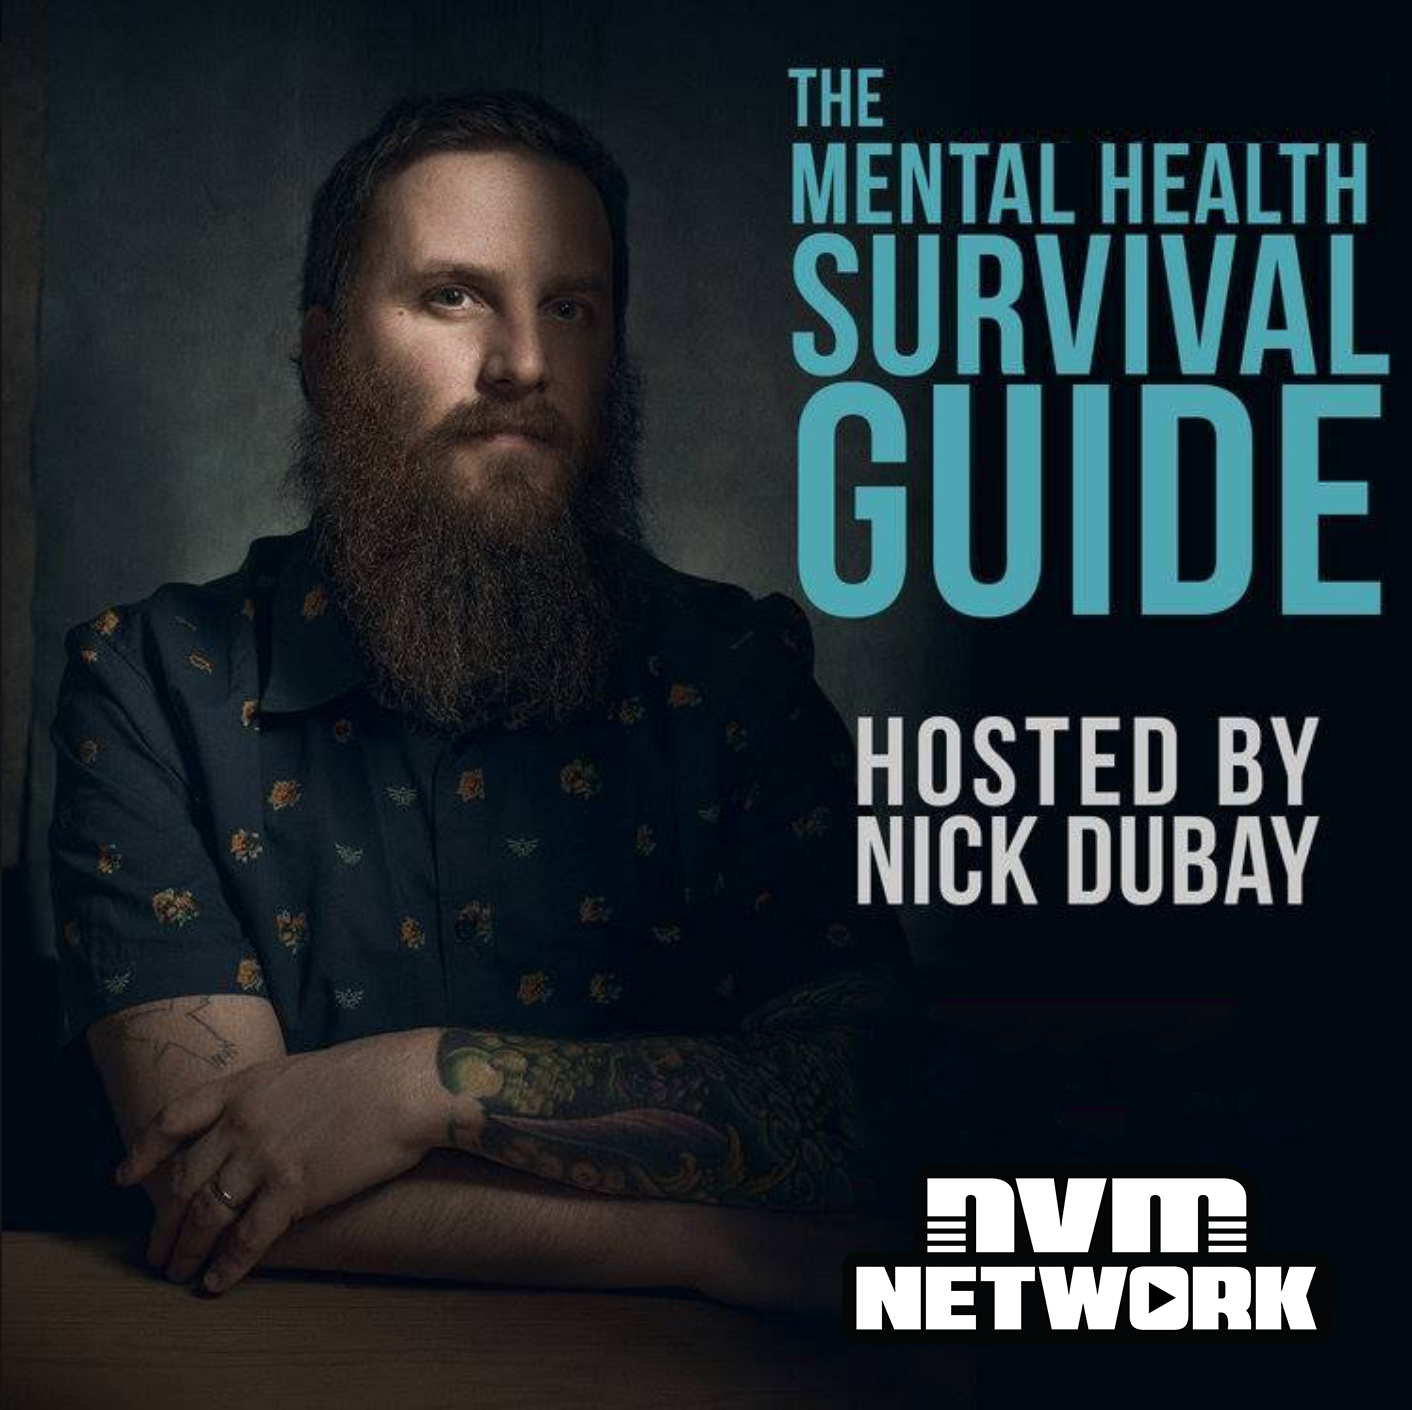 The Mental Health Survival Guide